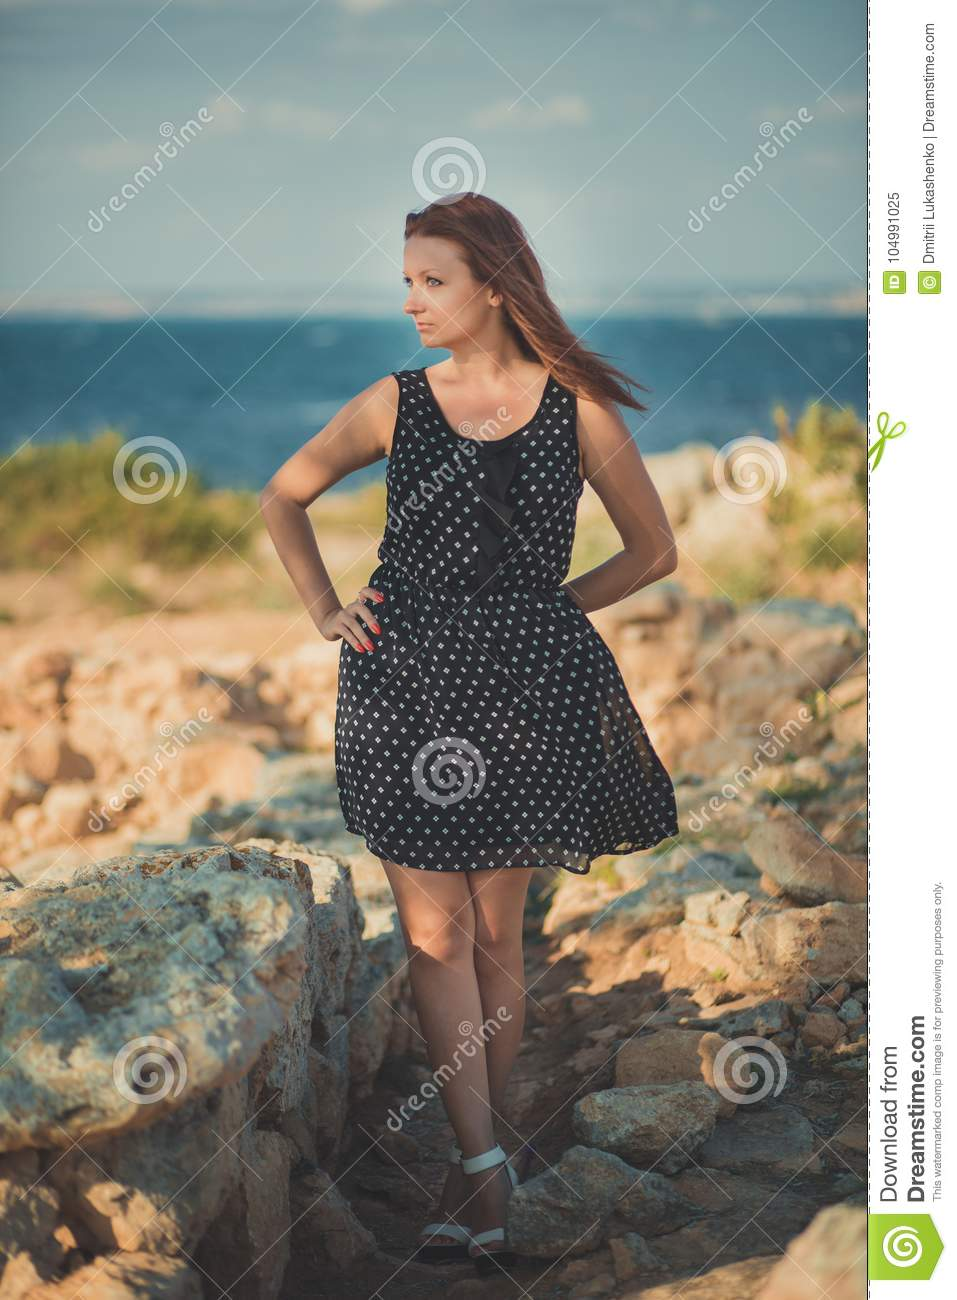 Hot stylish dressed young lady brunette hairs and pinky cheeks with open legs shoulders and arms posing sensuality on sea sid